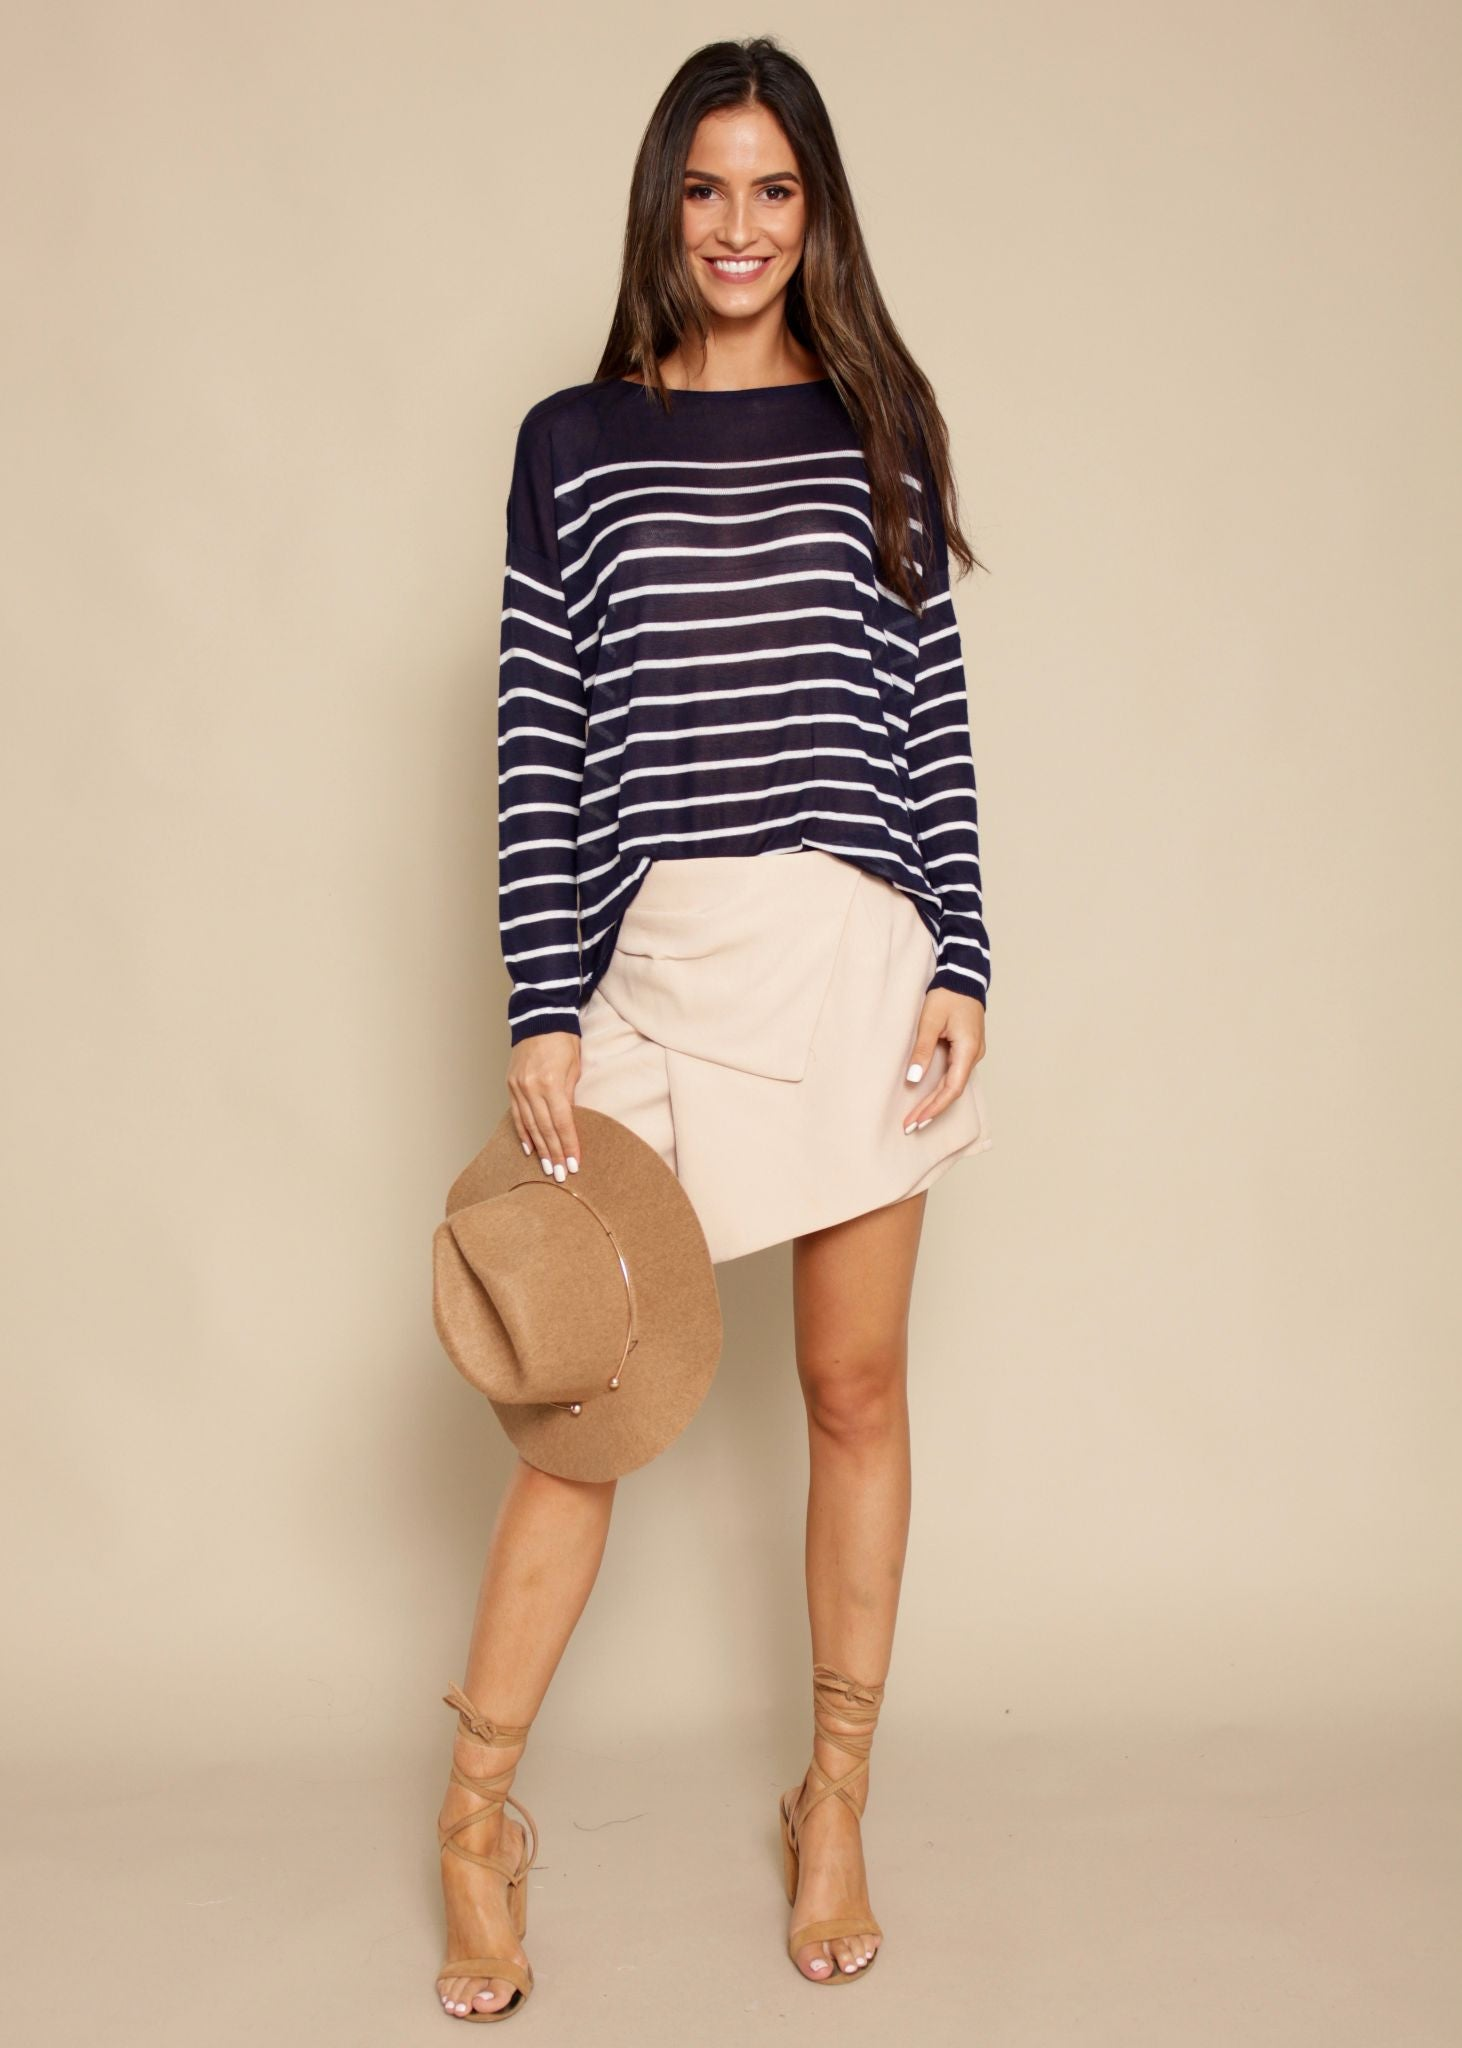 Feeling Free Sweater - Navy/White